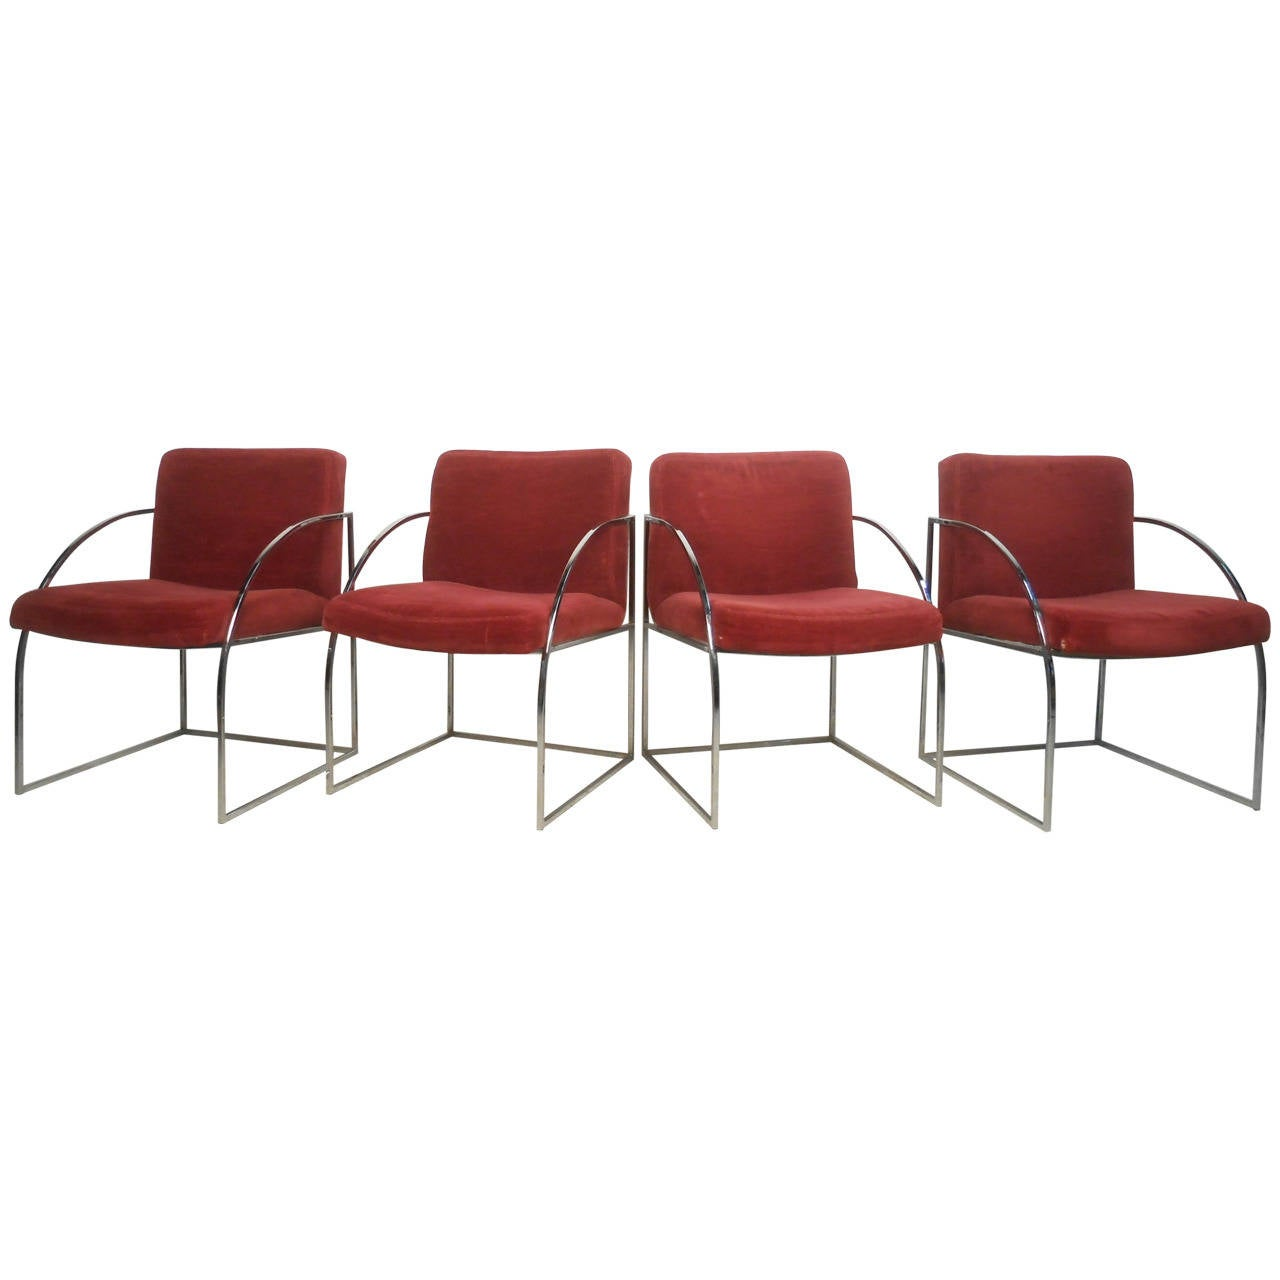 Set of Mid-Century Modern Milo Baughman for Thayer Coggin Dining Chairs